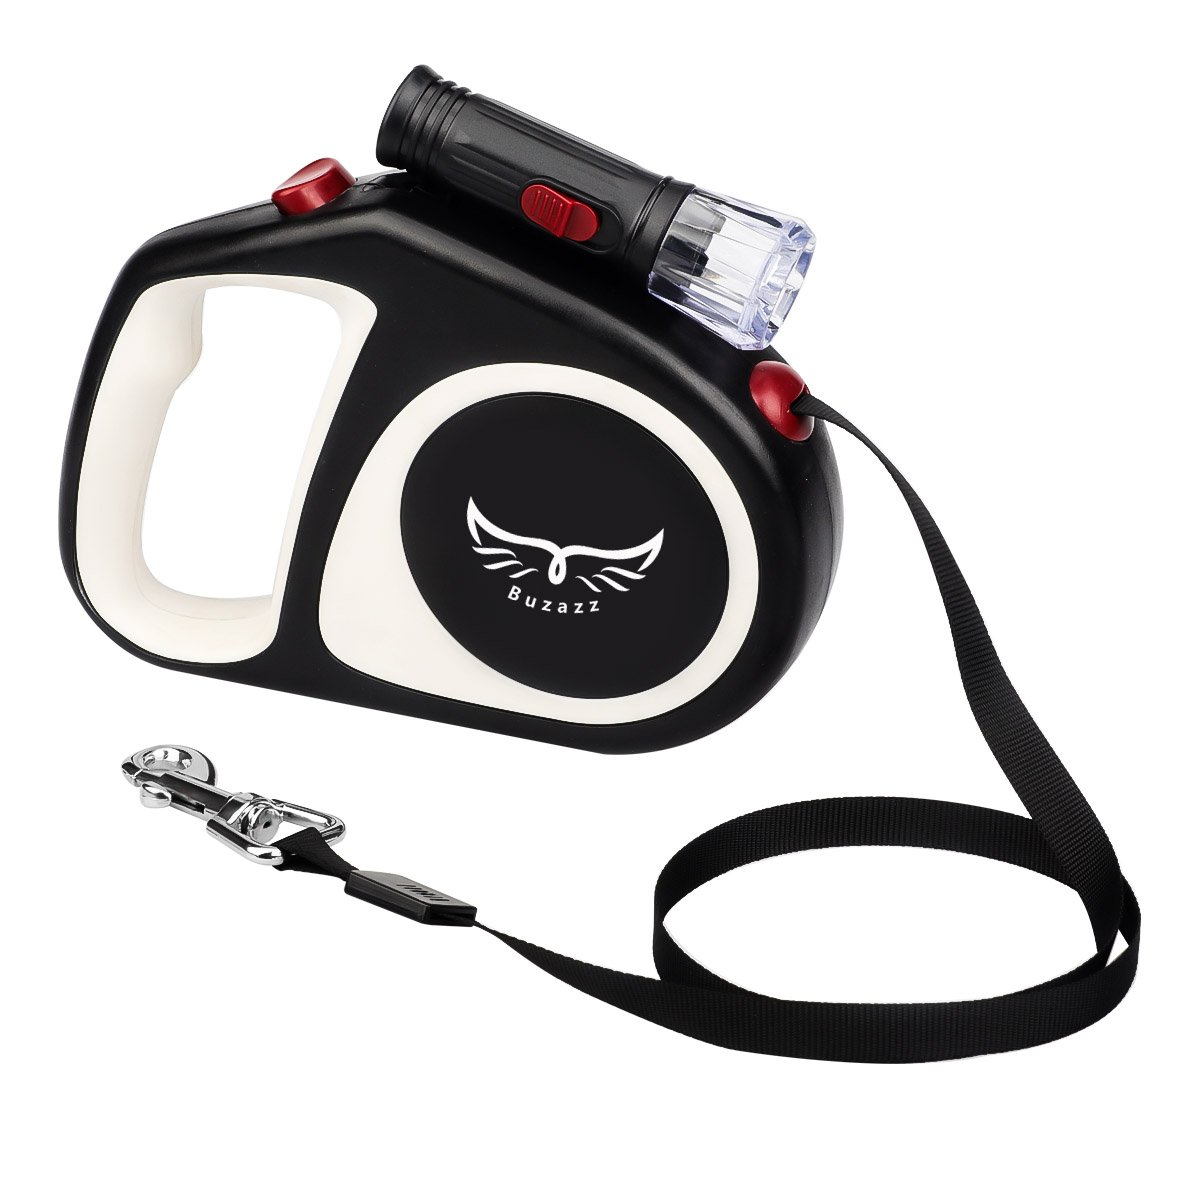 Buzazz Retractable Dog Leash, 5m/16ft Automatic Retractable Dog Walking Lead for Small Medium Dog With Anti-Slip Handle and LED nightlight, Moving Free, One Button Break & Lock